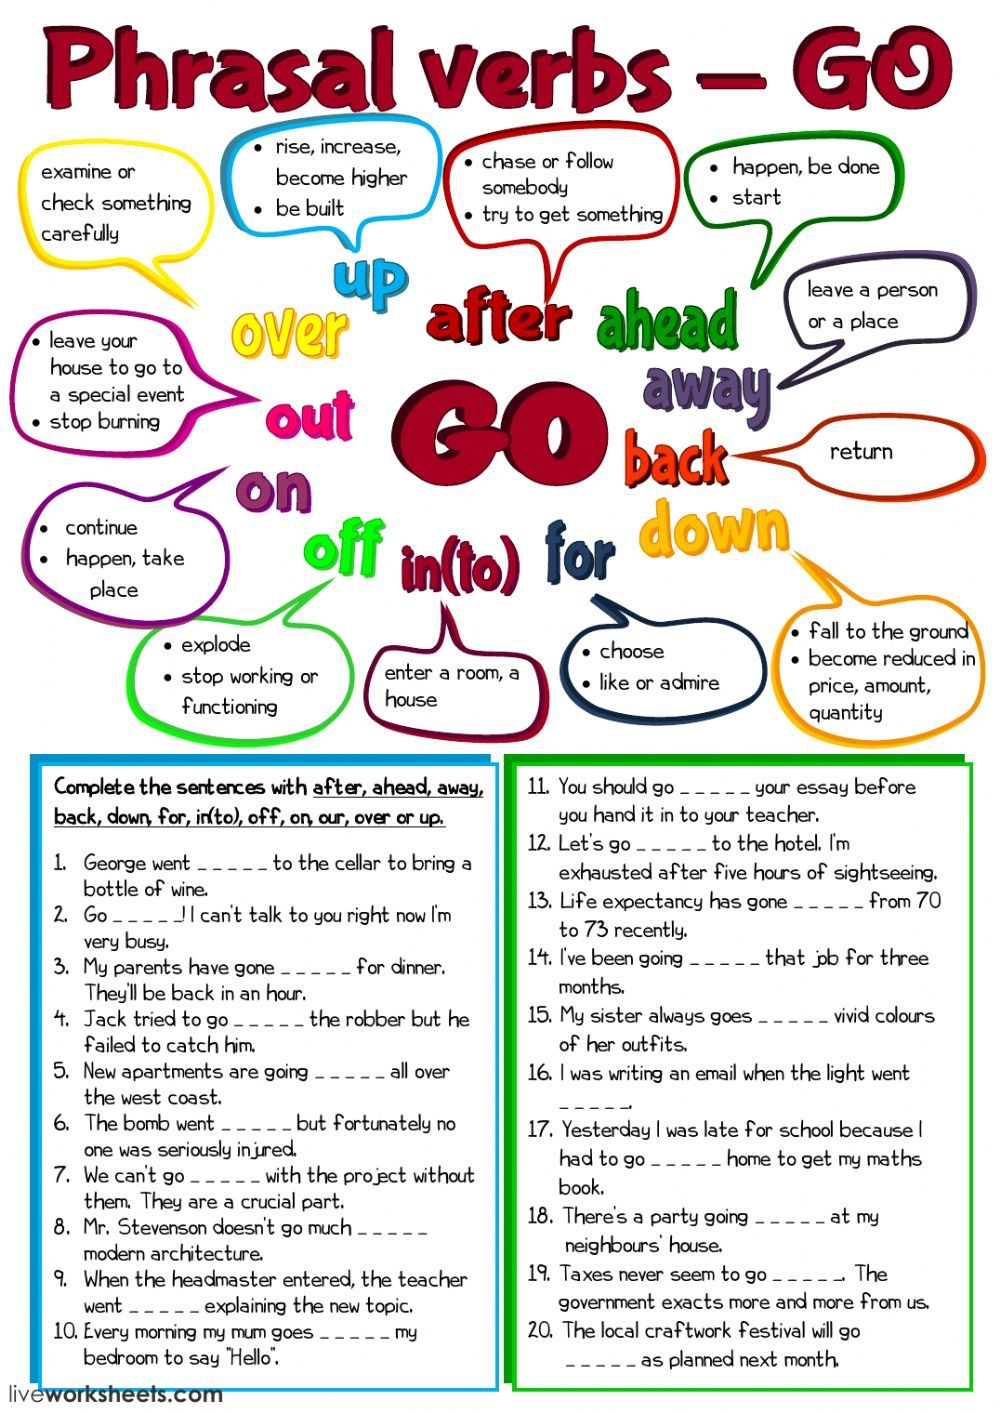 Phrasal verbs interactive and downloadable worksheet. You can do the  exercises online or download the worksheet as pdf…   Verb worksheets [ 1413 x 1000 Pixel ]